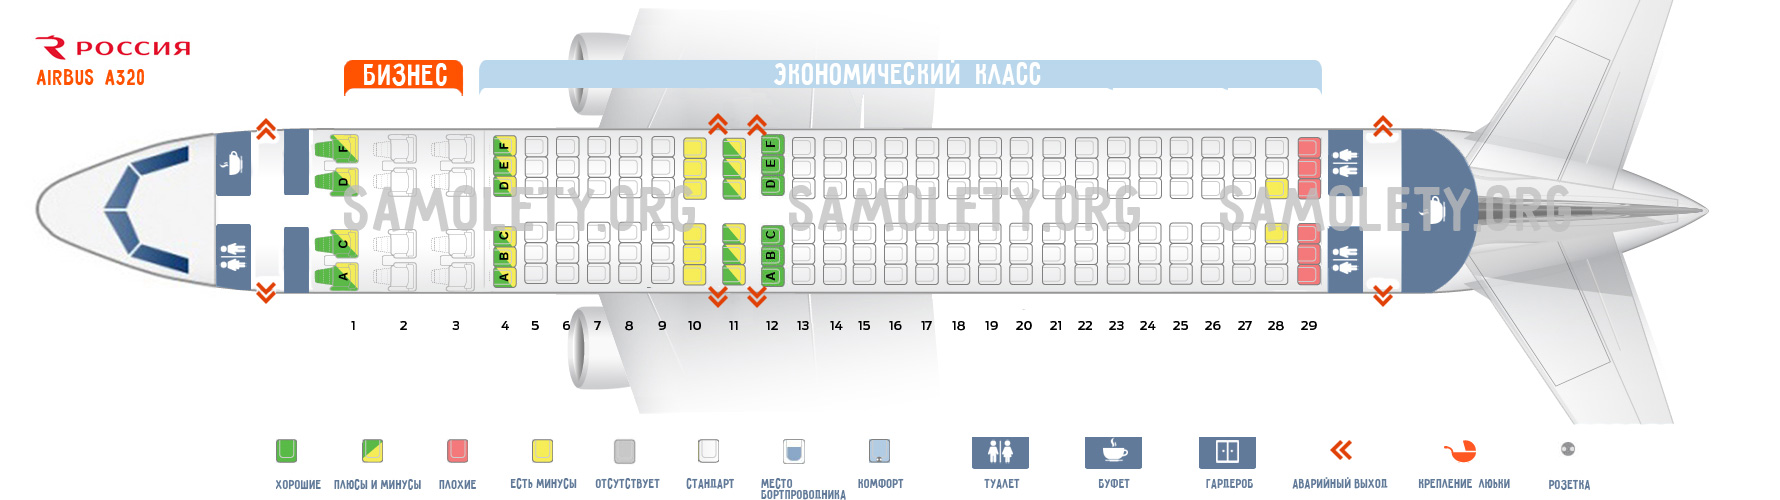 Seat_map_Airbus_A320_Rossiya